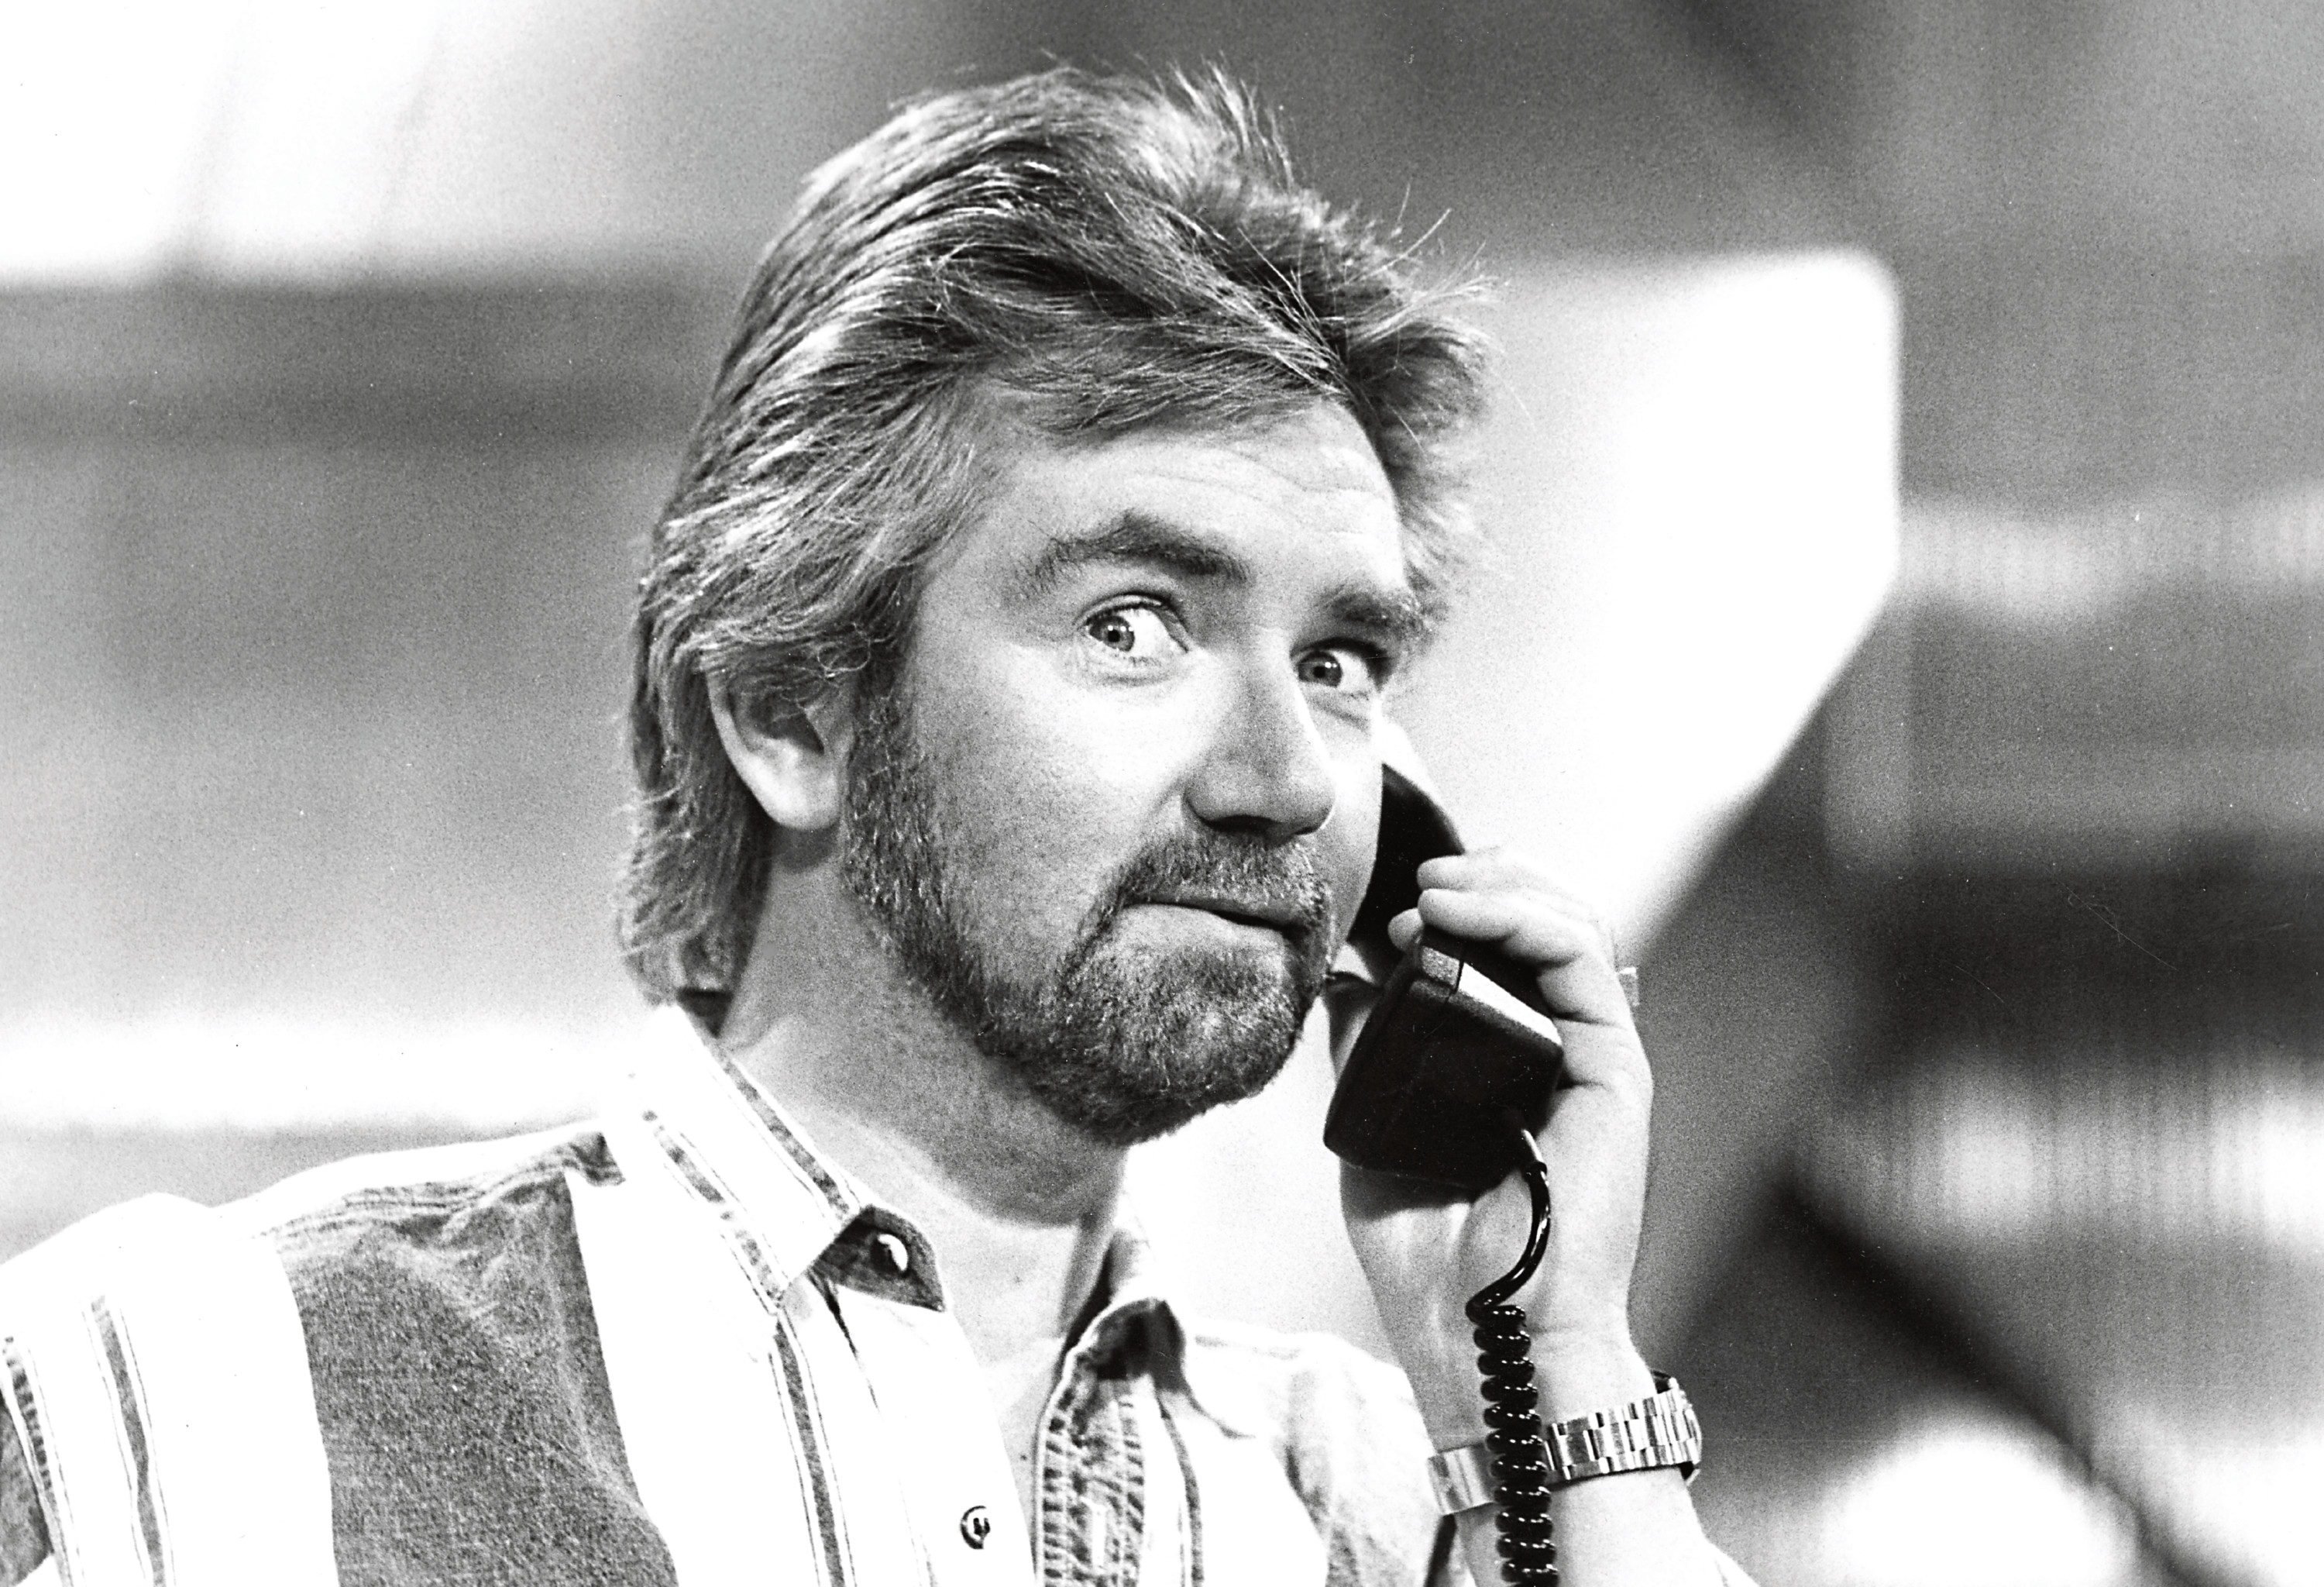 Presenter Noel Edmonds using a telephone on the set of a television show, October 24th 1989. (Photo by Don Smith/Radio Times/Getty Images)